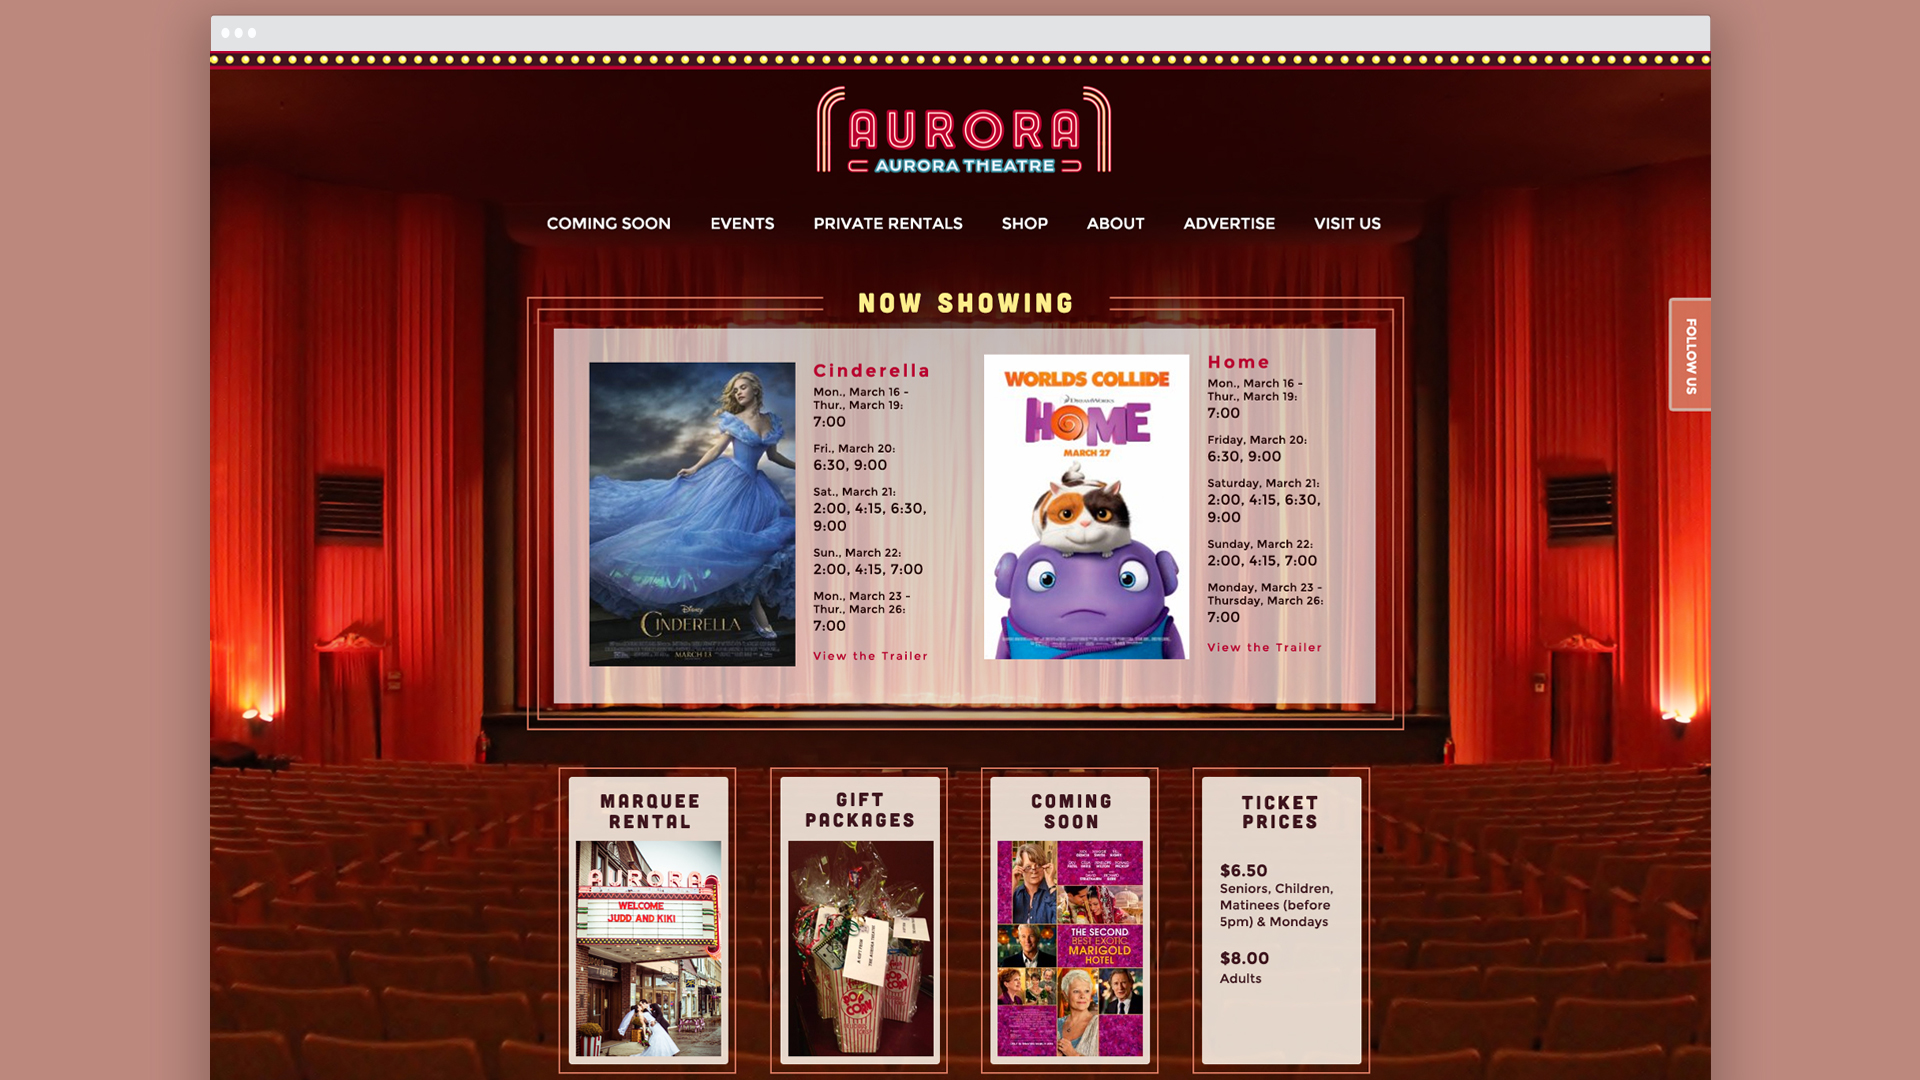 Web design for a movie theatre in East Aurora NY